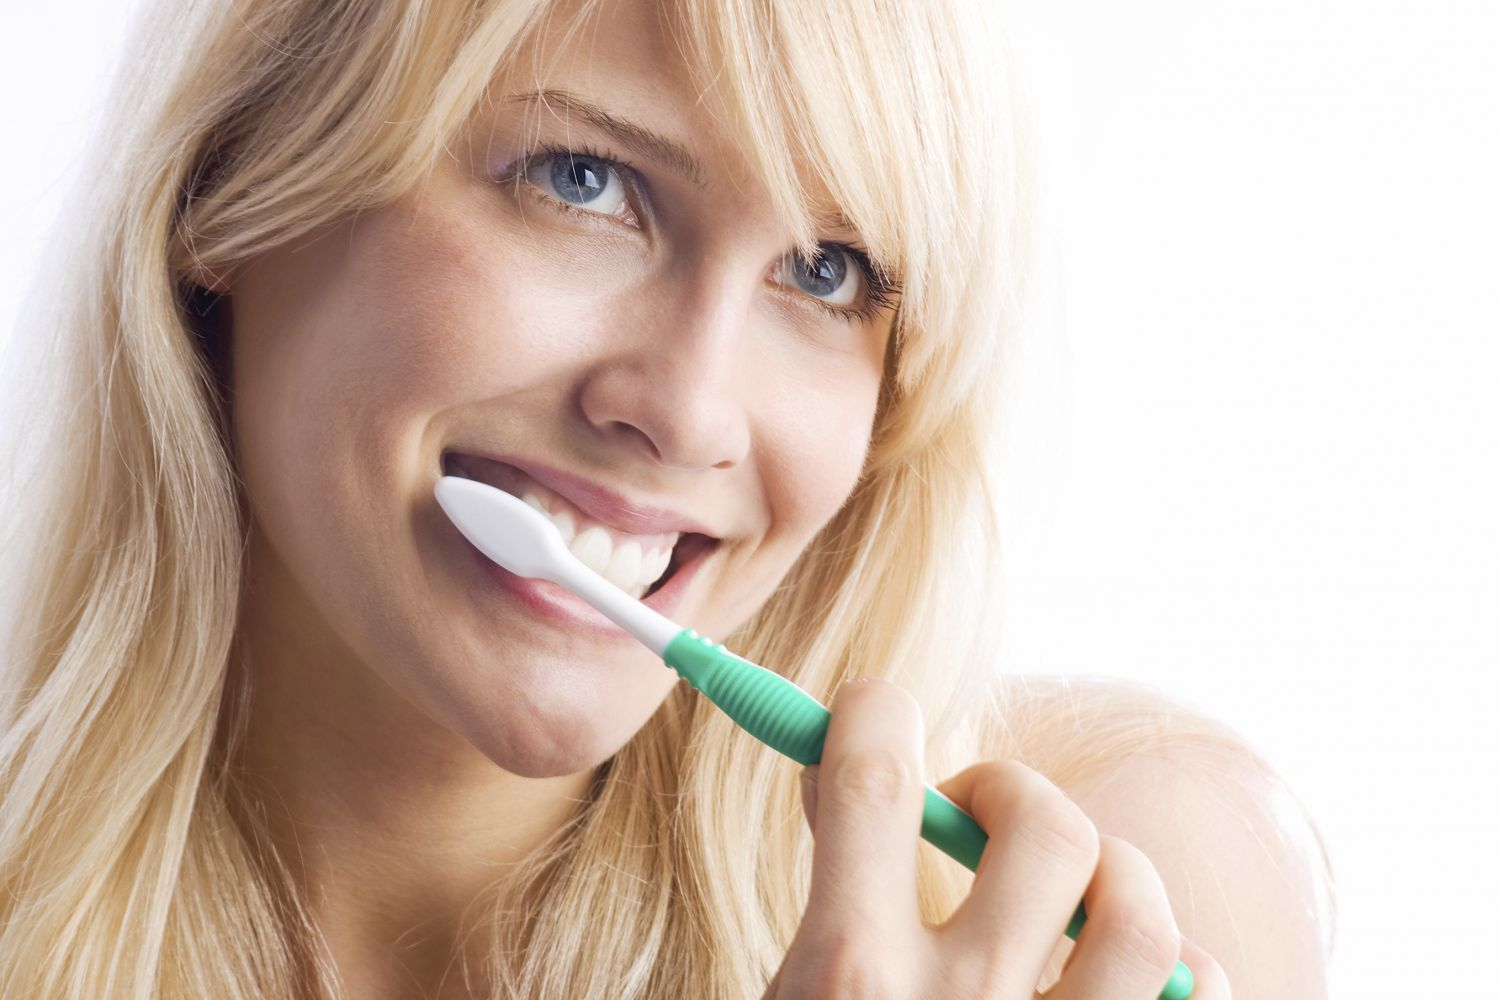 Pretty young woman brushing her teeth